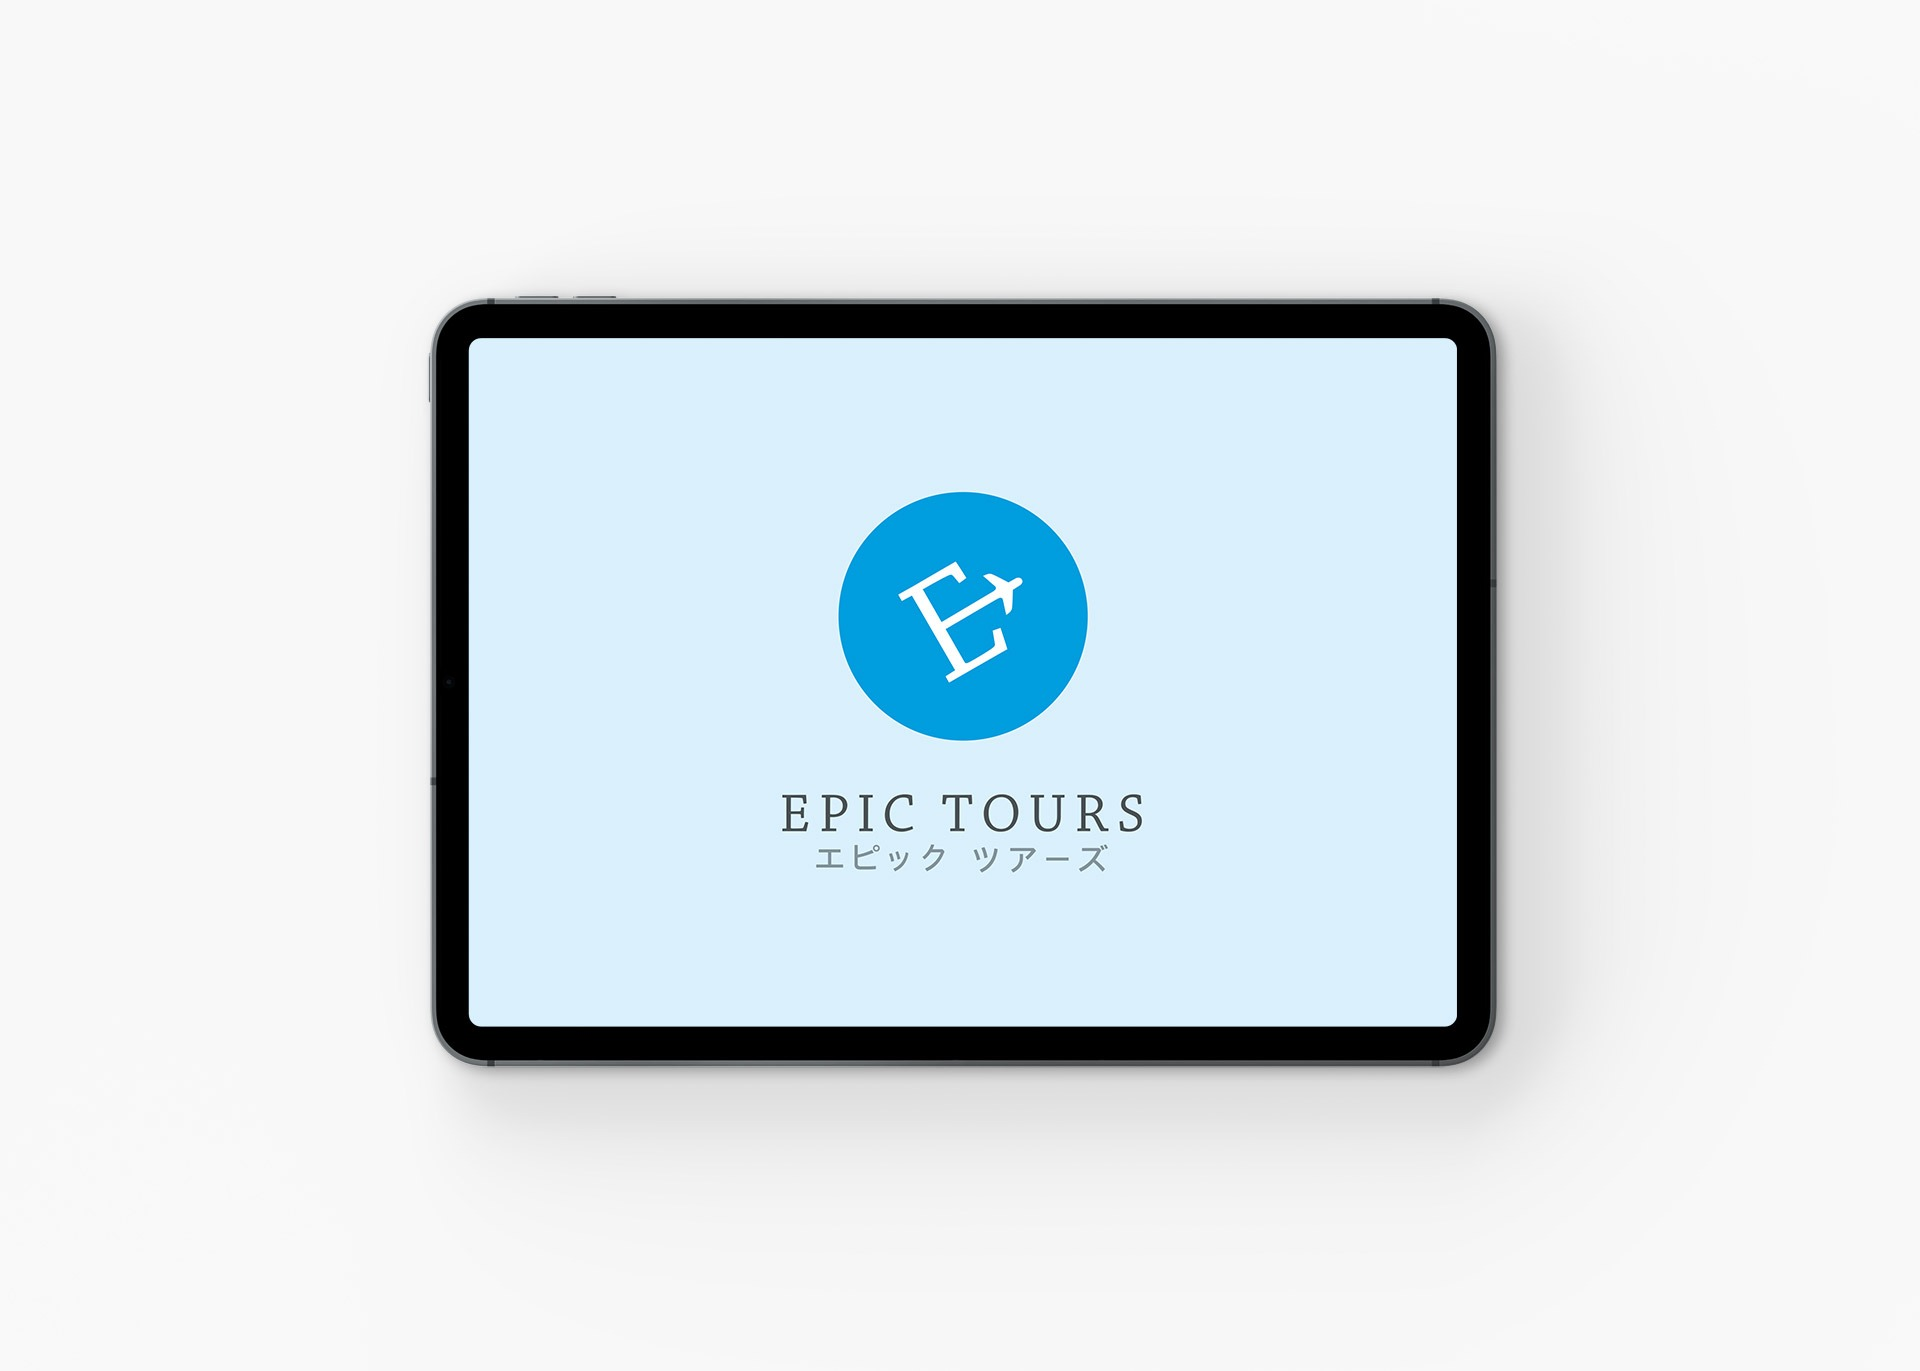 Branding for Epic Tours by Metod Studio